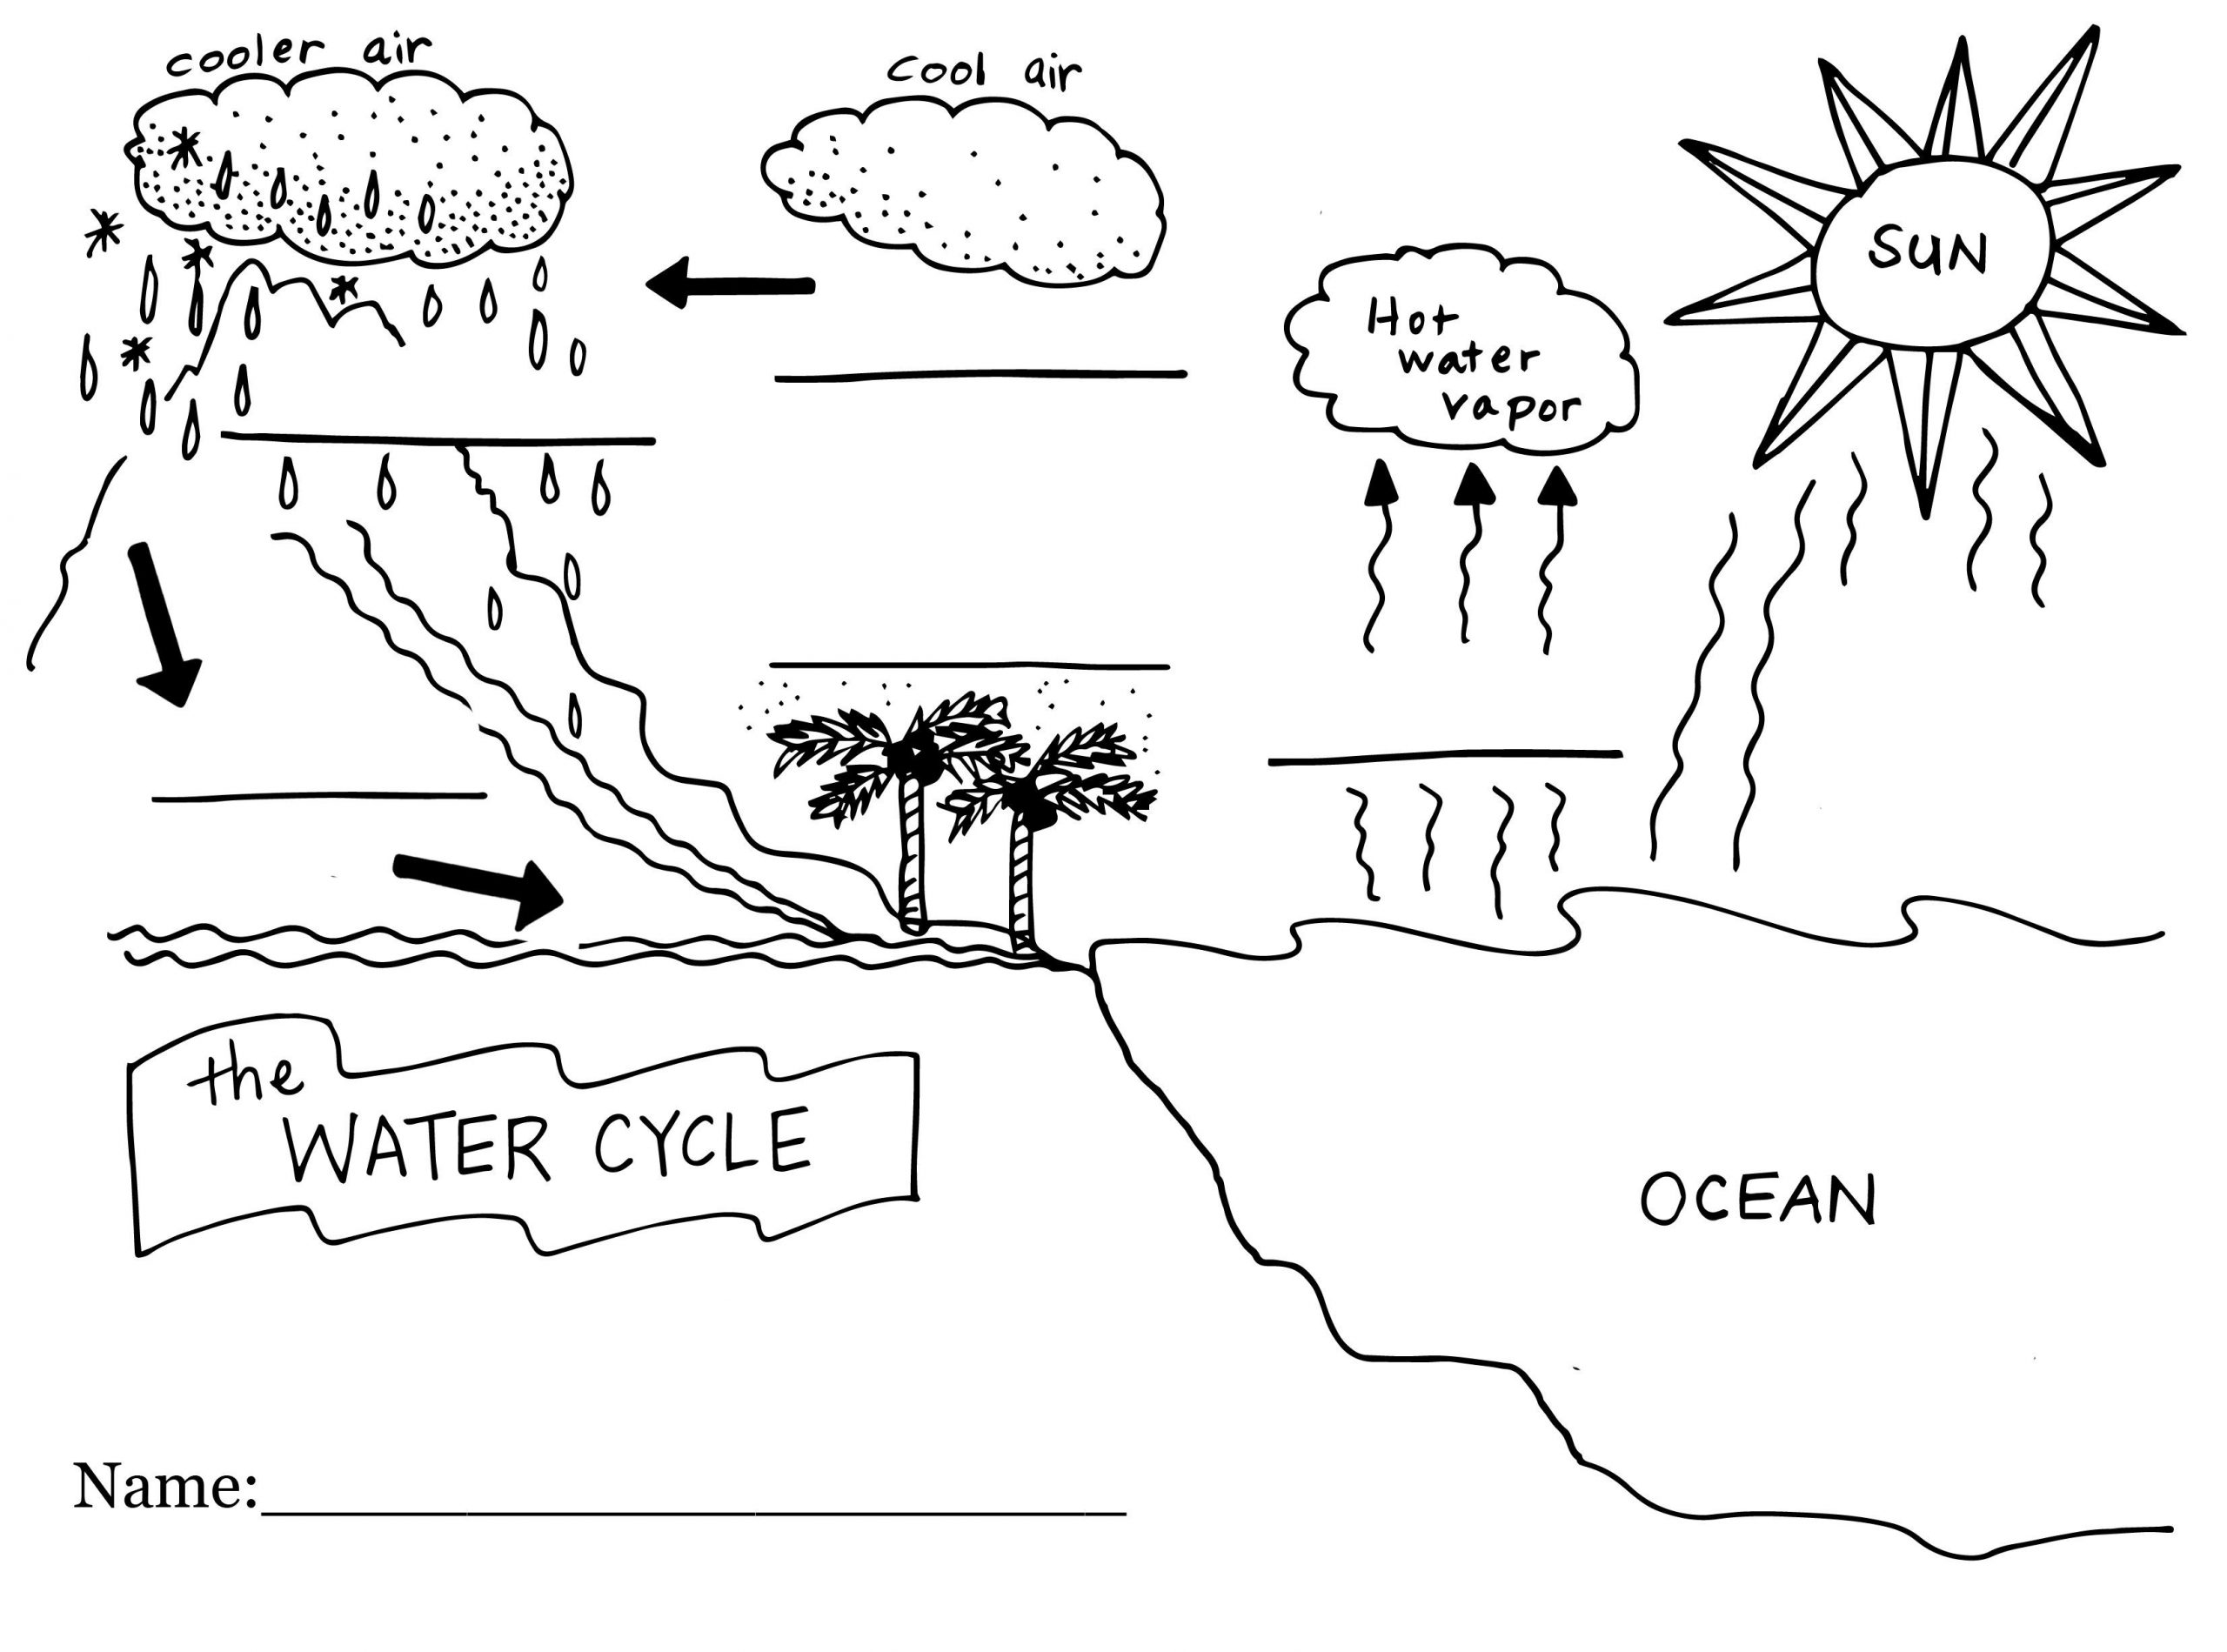 Water Cycle Worksheet 4th Grade Water Cycle Worksheet Middle School